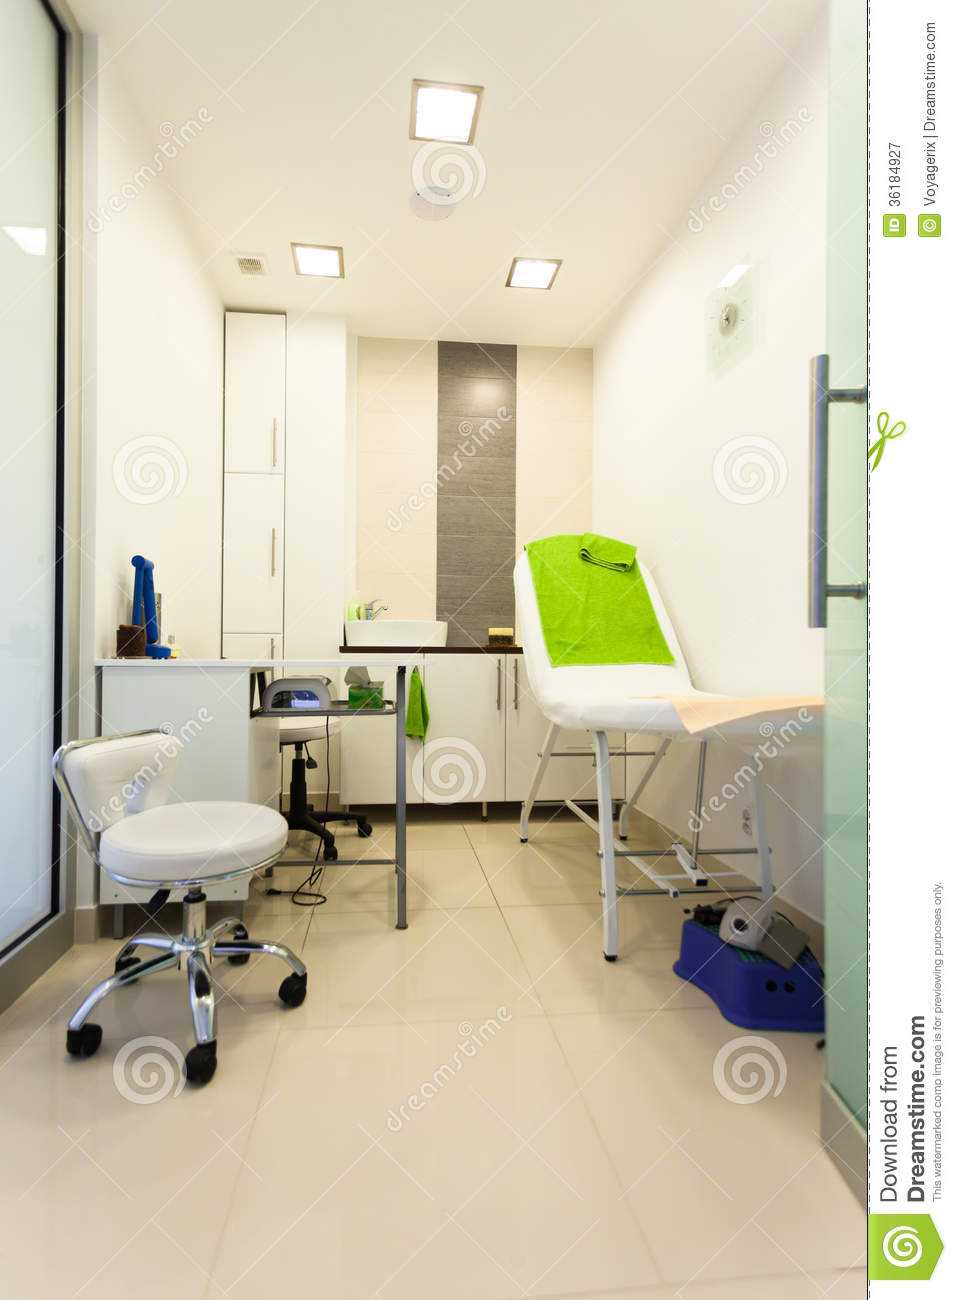 Interior Of Modern Healthy Beauty Spa Salon Treatment Room Stock Image Image Of Parlor Wellbeing 36184927